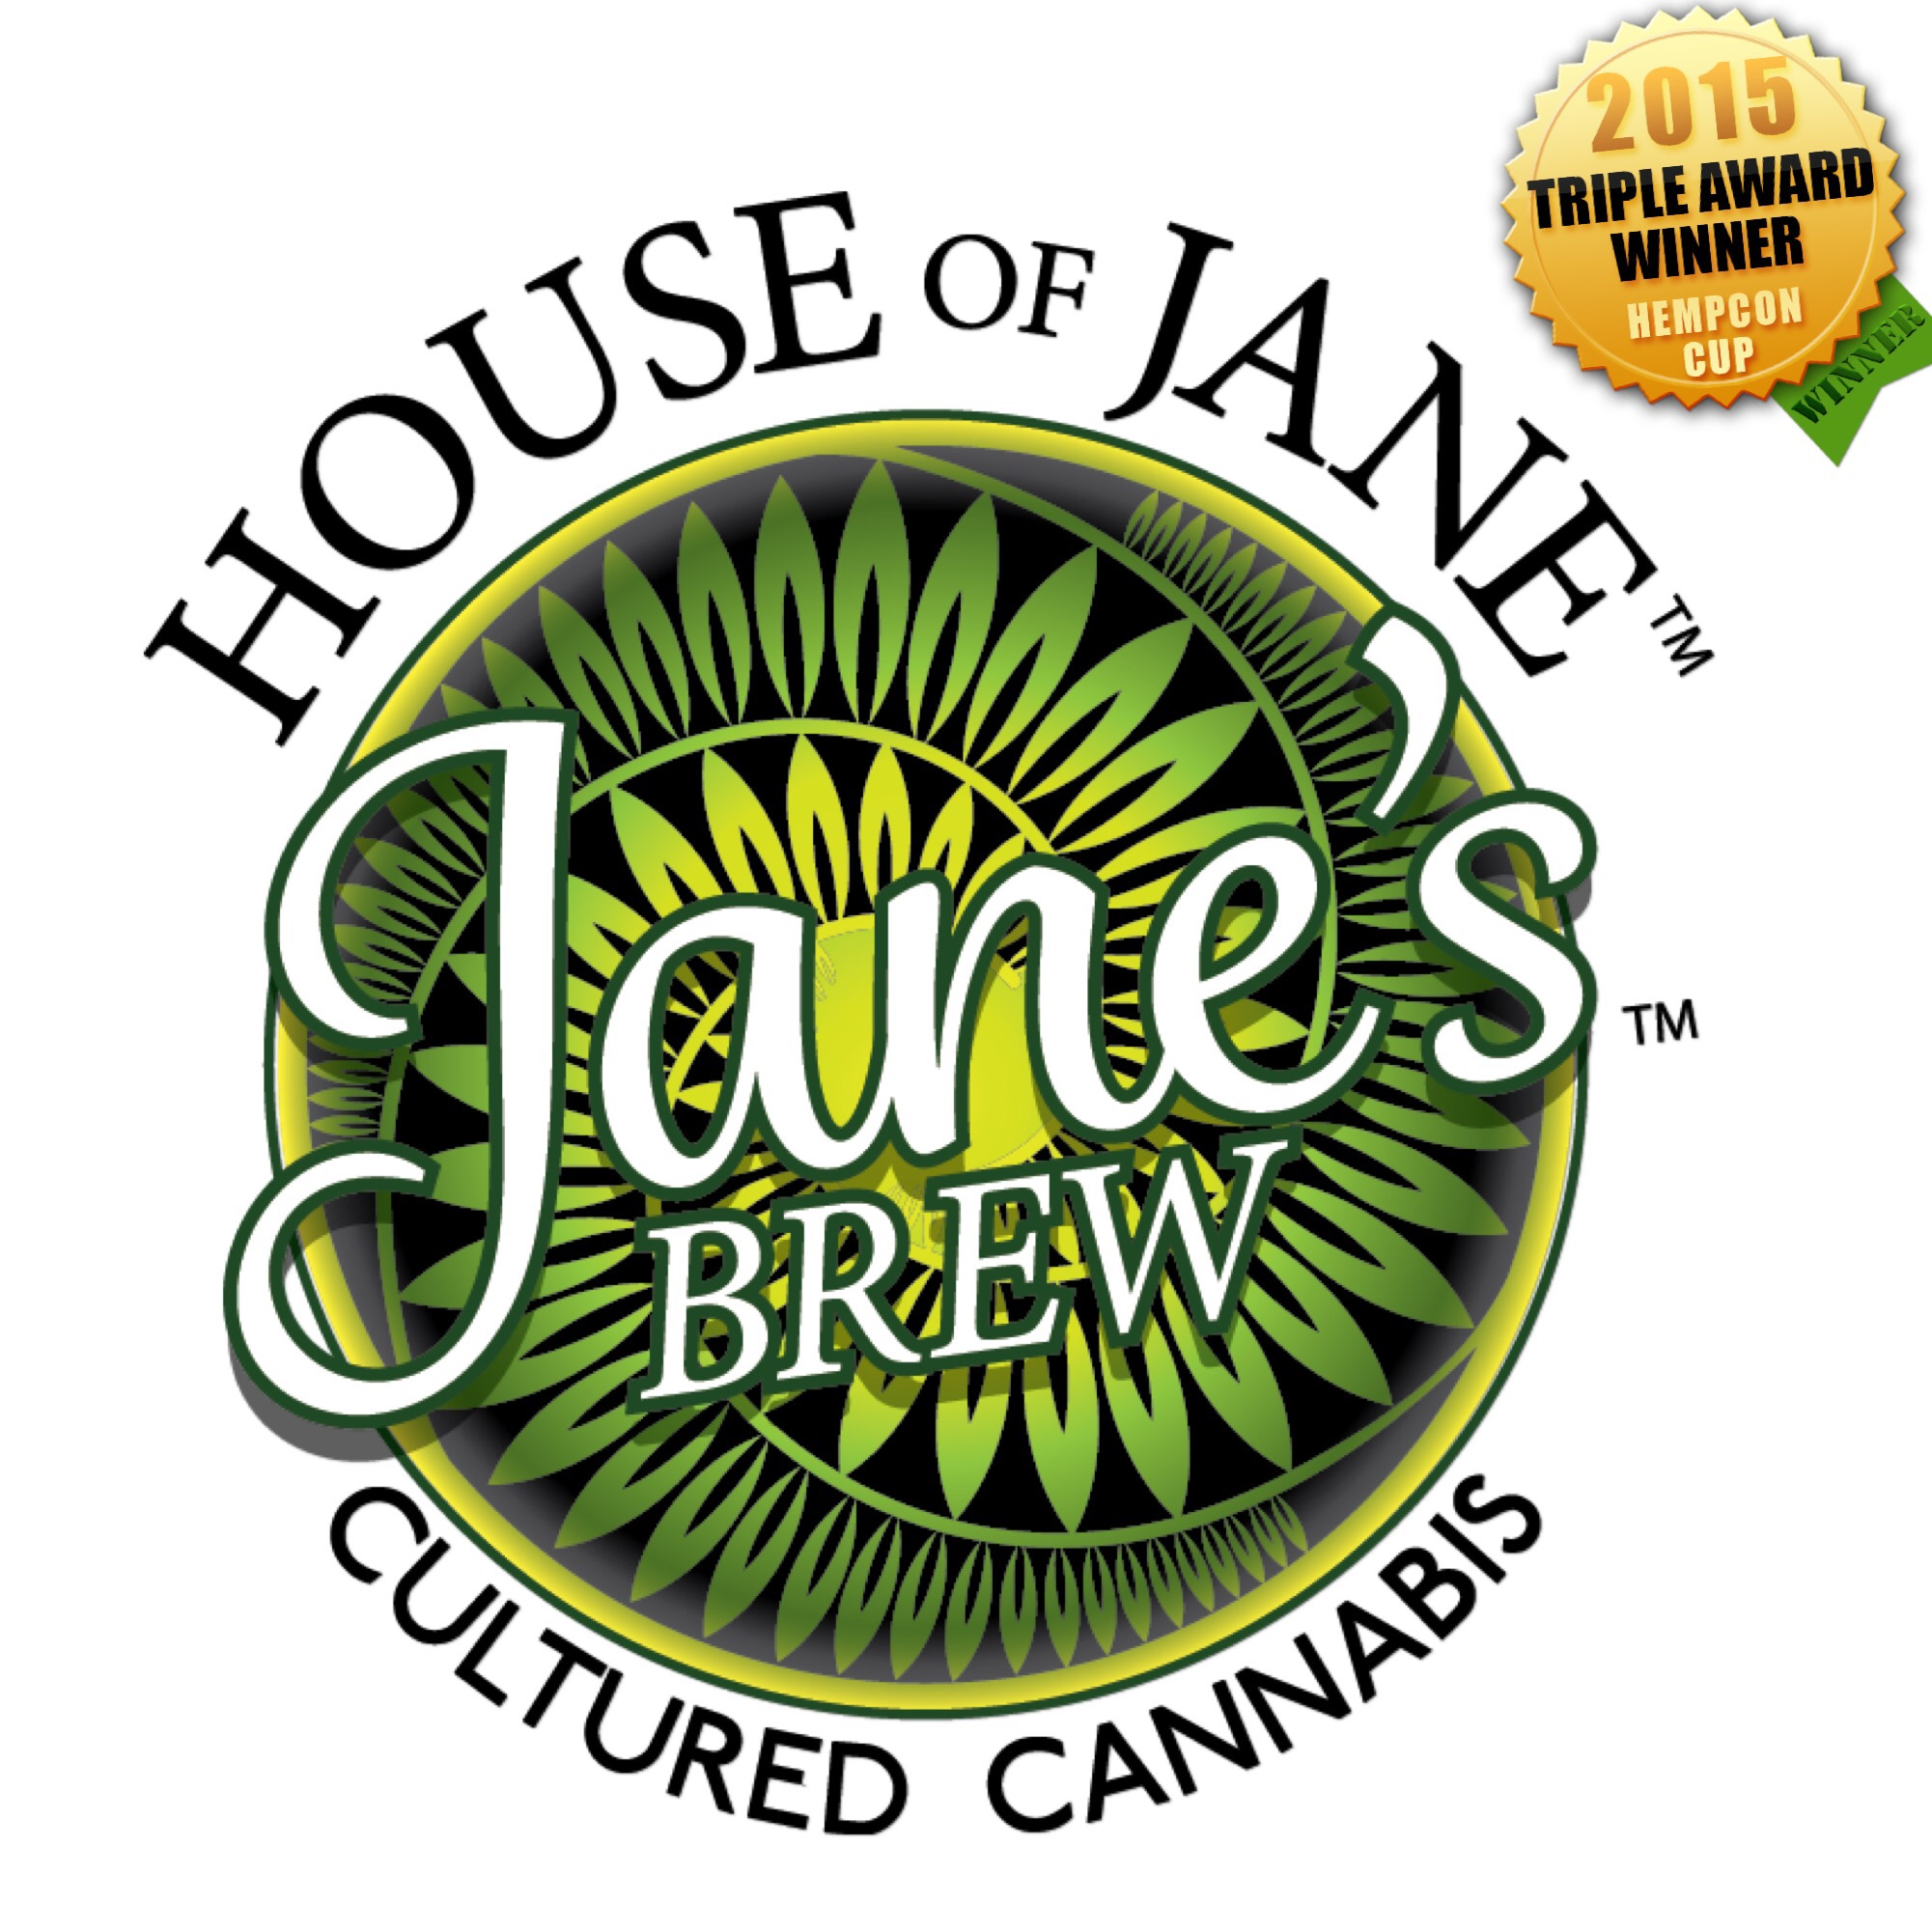 House of Janes brew